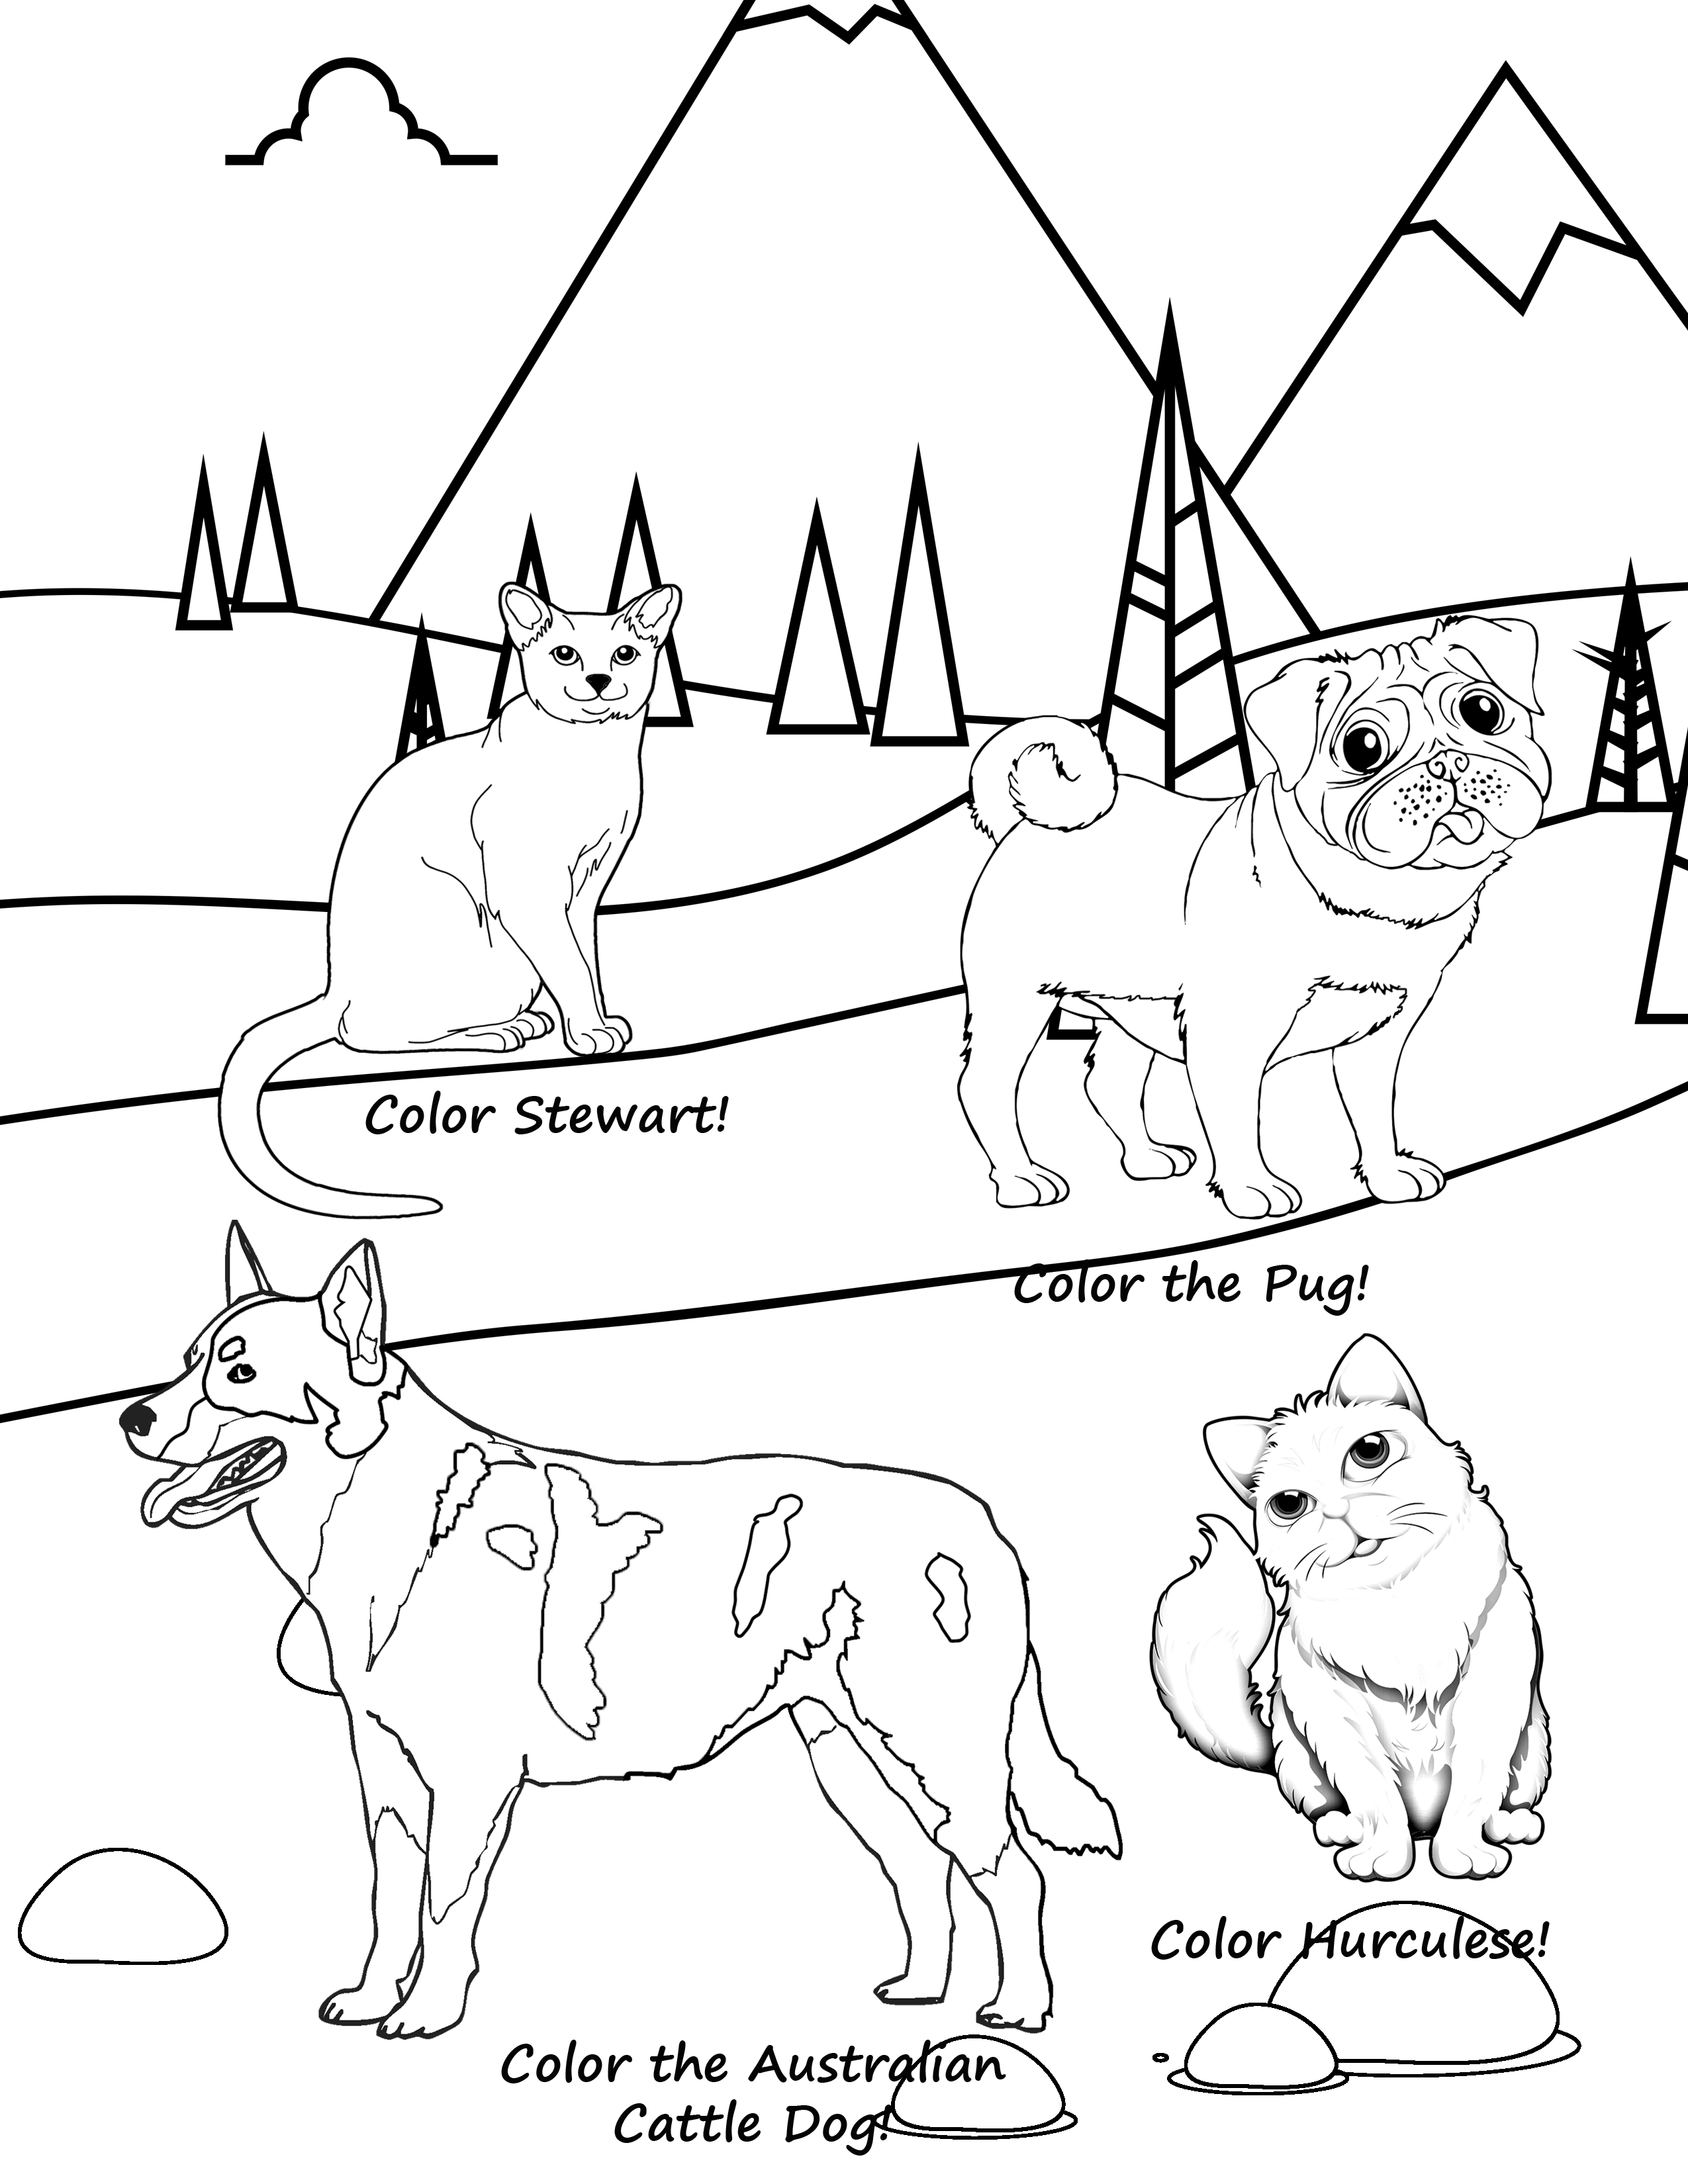 Pets In The Winter: Children's Coloring Book